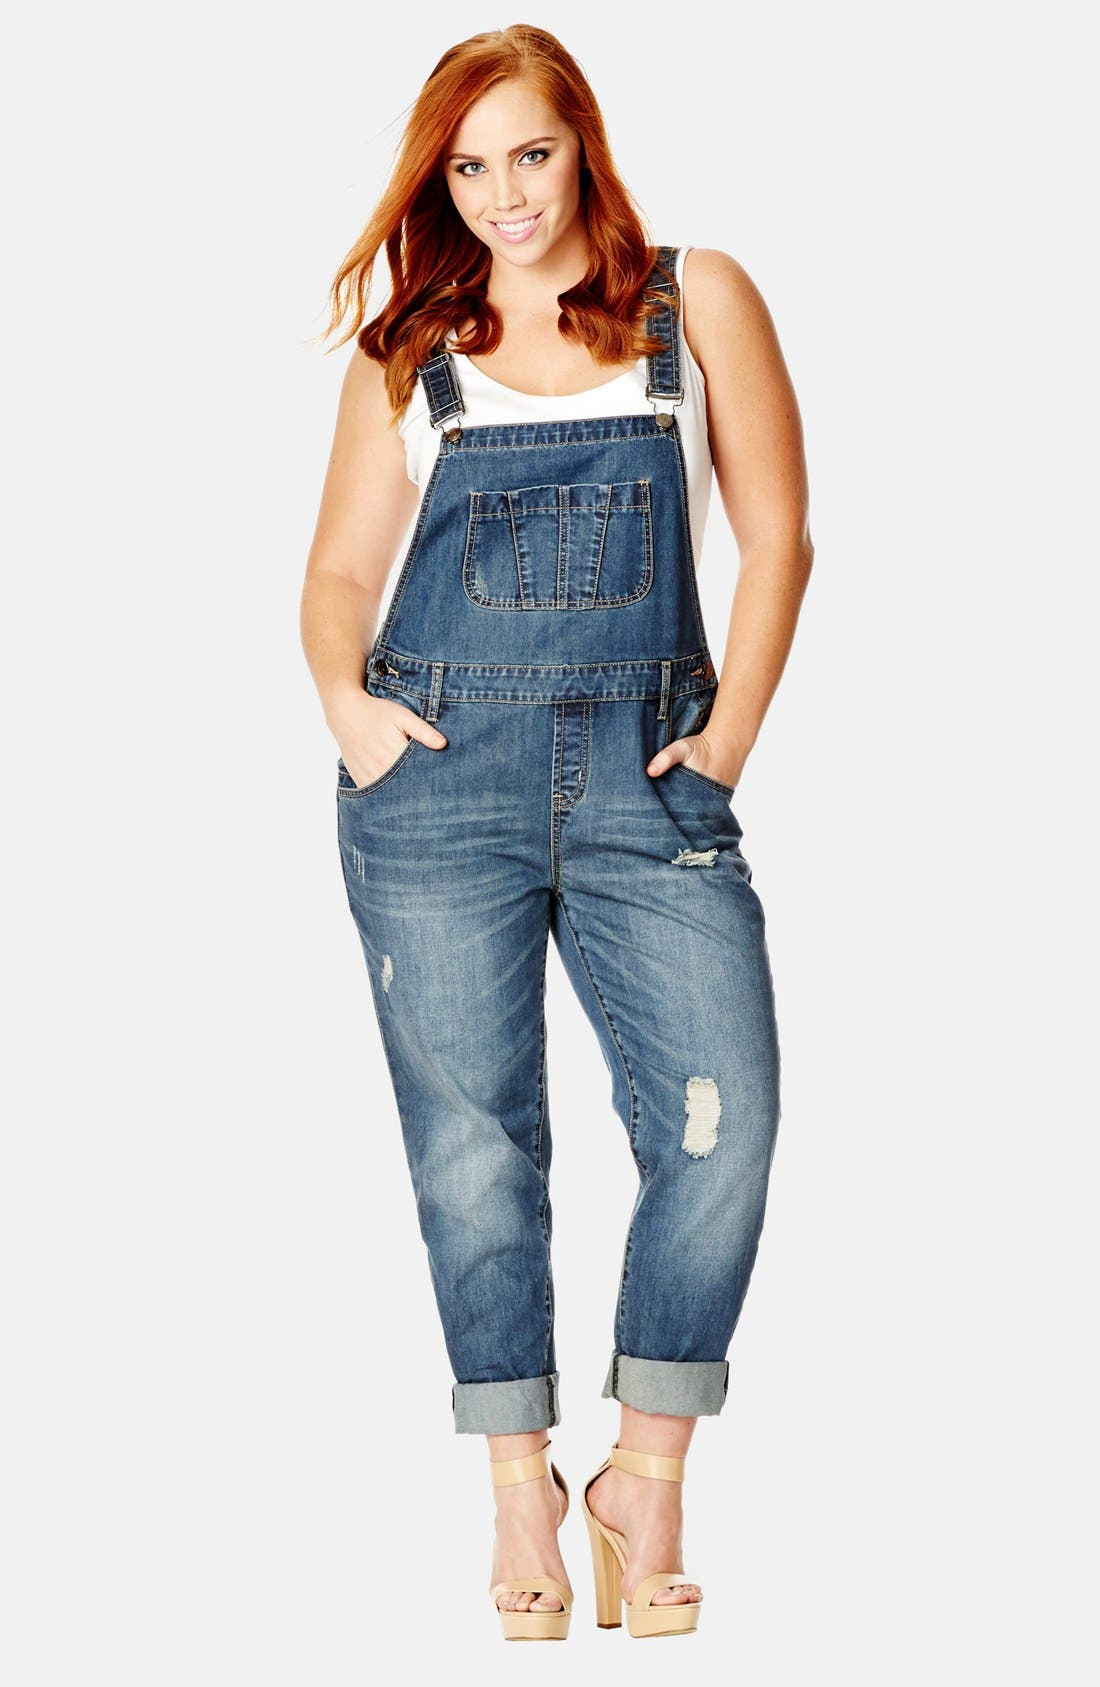 Alternate Image 1 Selected - City Chic 'Over It All' Distressed Denim Overalls (Plus Size)